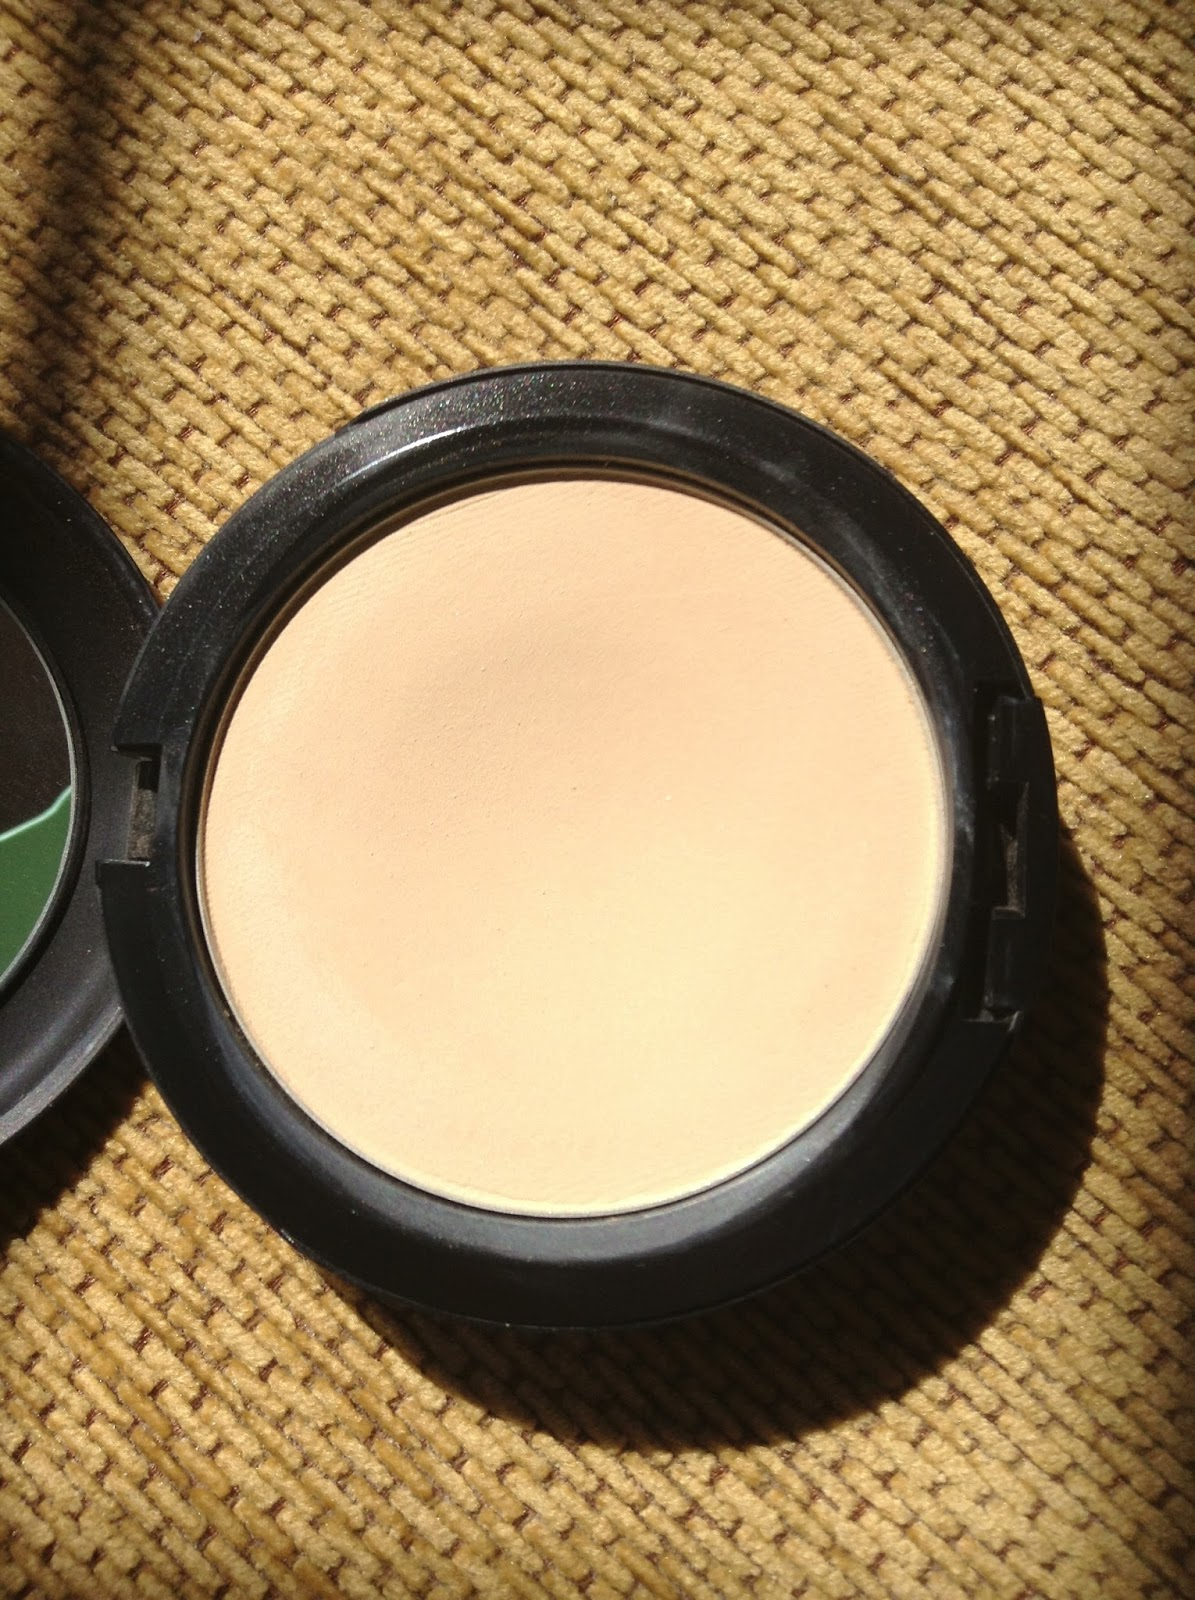 Daily Dose Of Amelie Mac Studio Fix Powder Plus Foundation In C2 Looks Peachier Slightly Darker Here Than It Actually Is